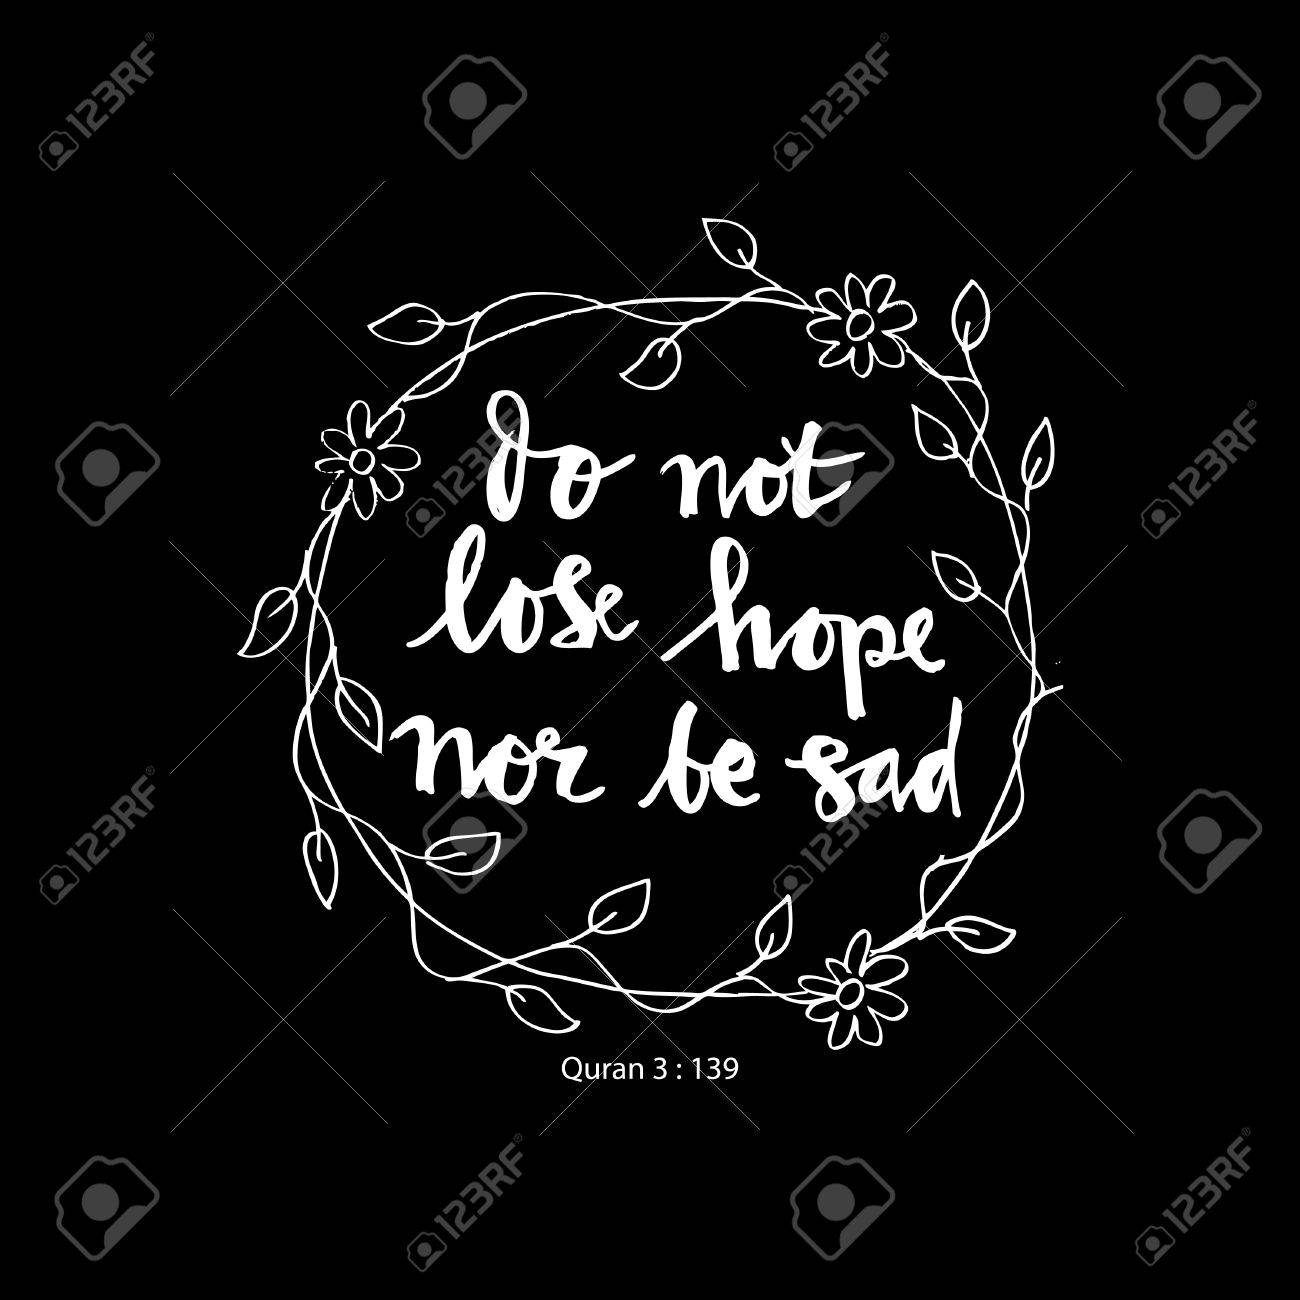 Quotes Quran Do Not Lose Hope Nor Be Sadislamic Quran Quoteshand Lettering